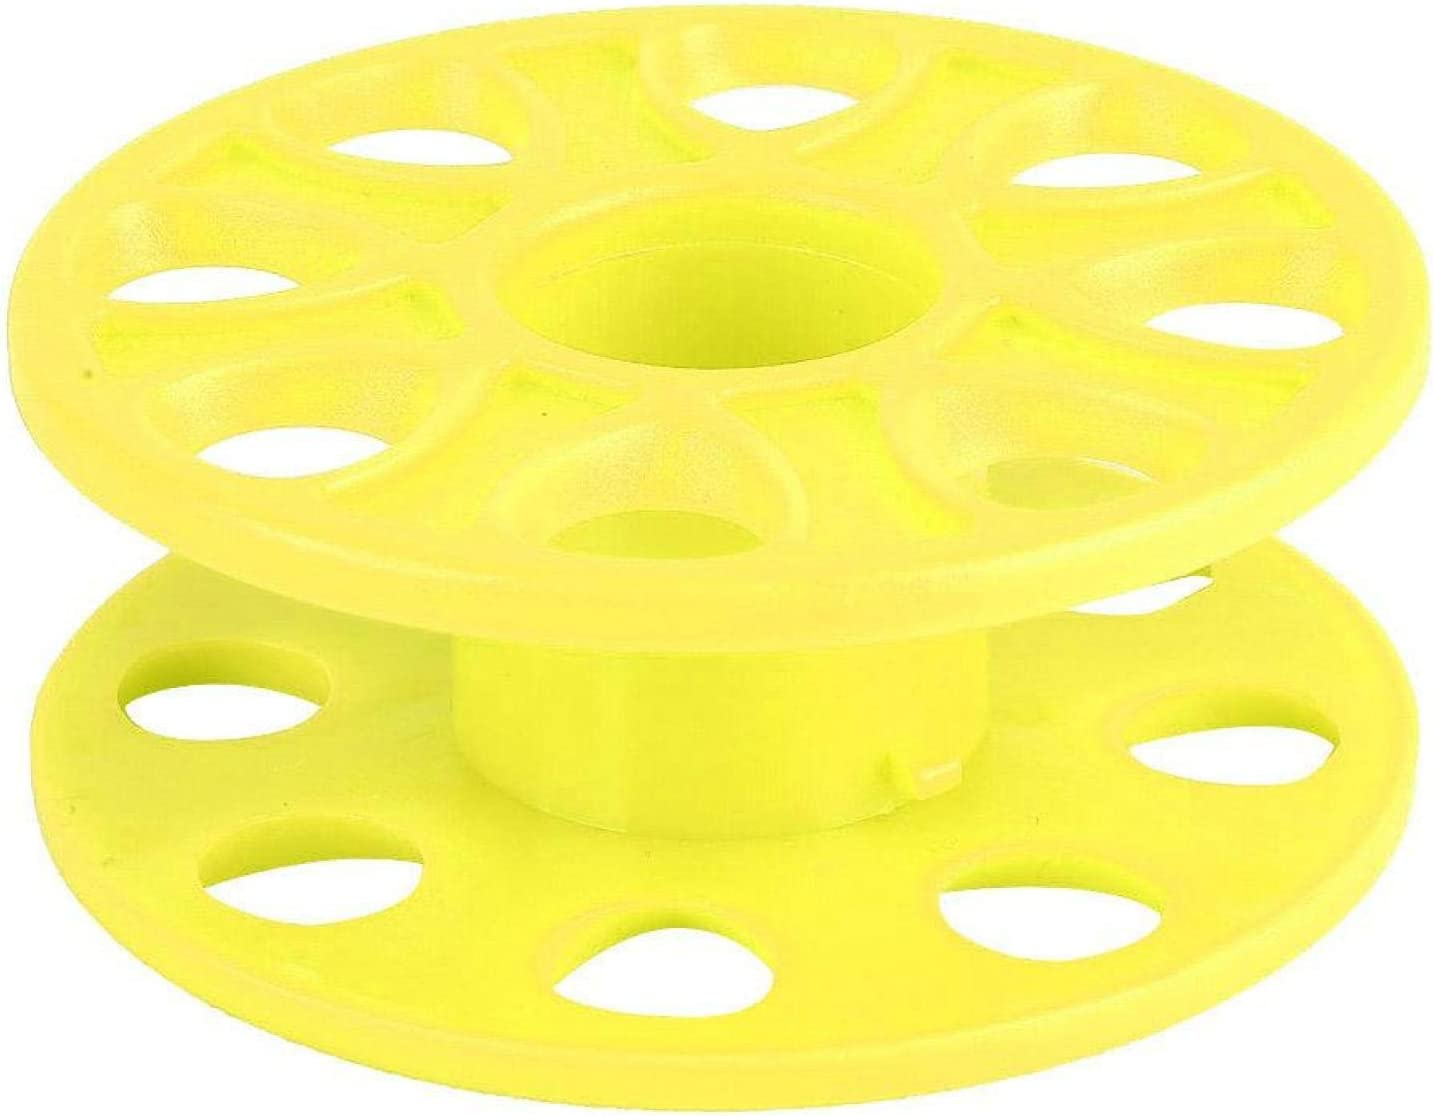 YUUGAA Diving Finger Spool Plastic Scuba Compact Deluxe Durable National products